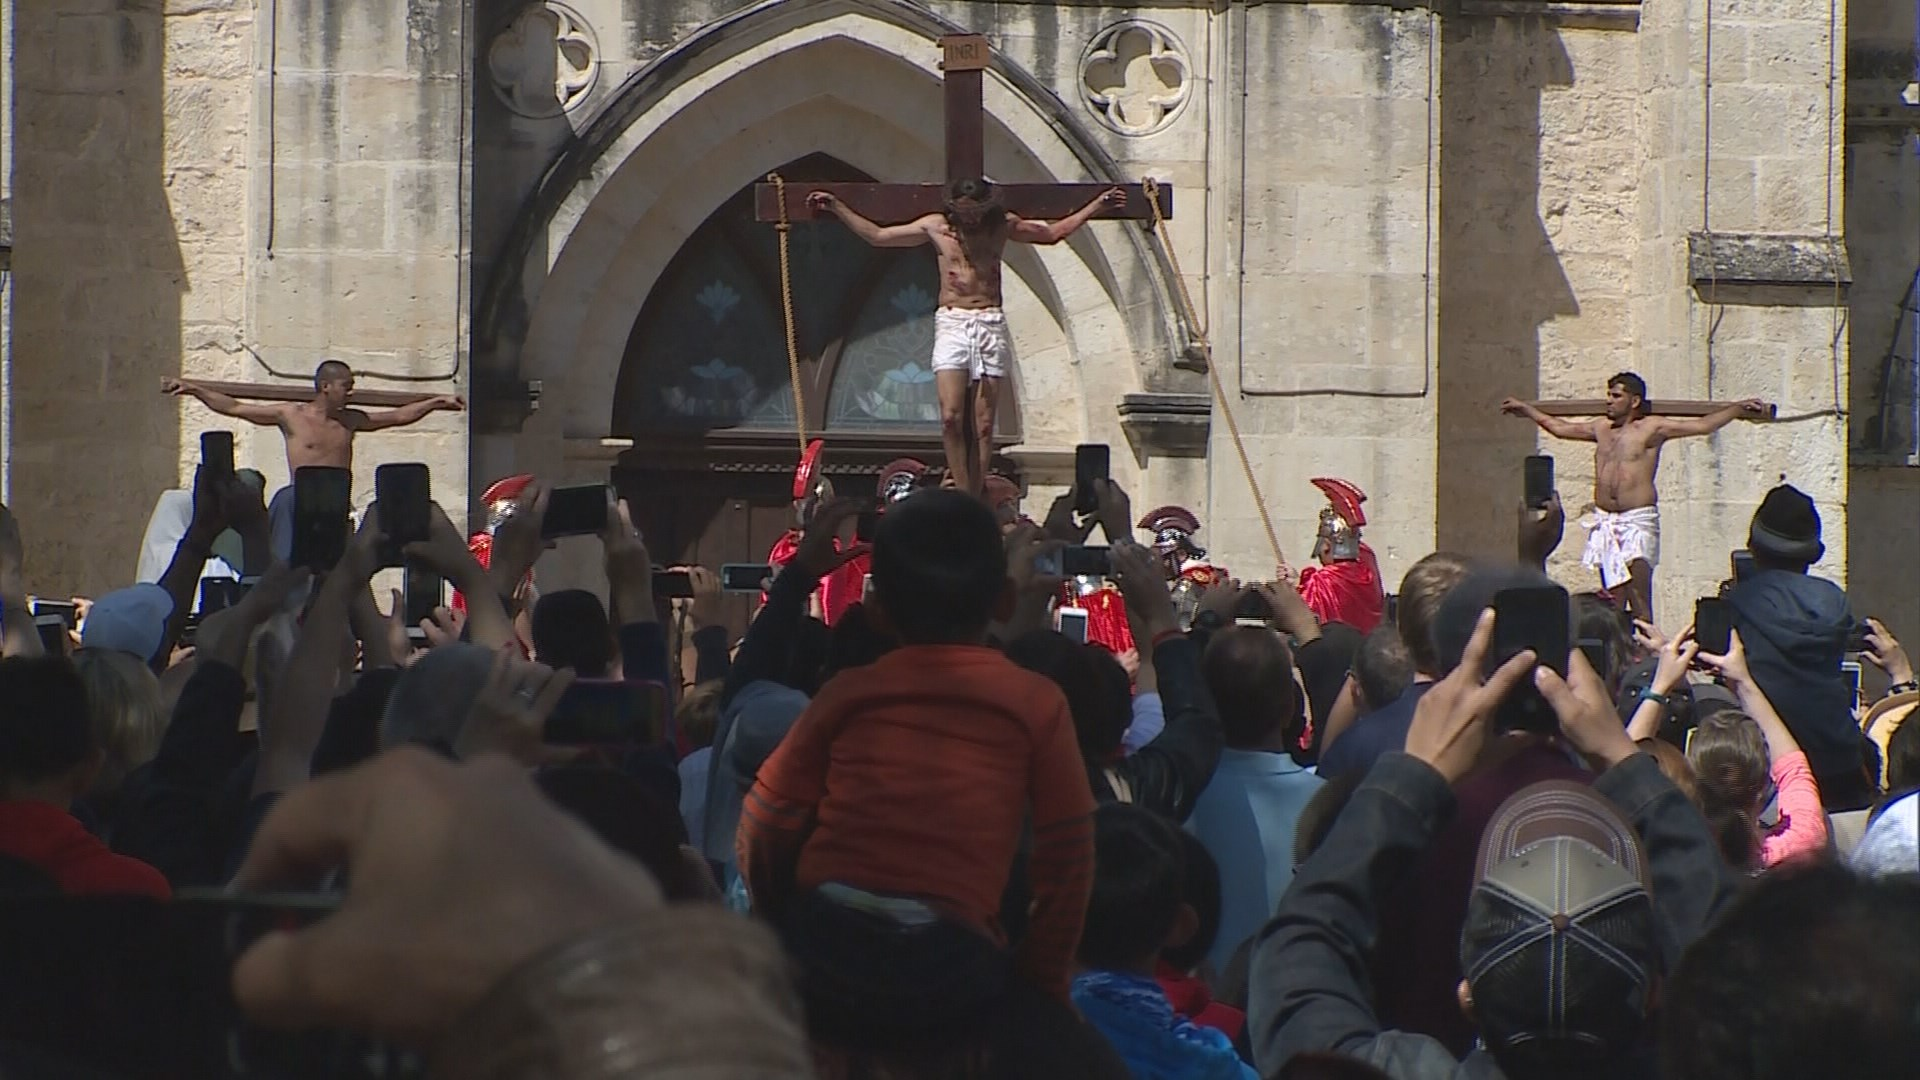 The Passion 2017 Thousands To Gather For Passion Of Christ Re Enactment In